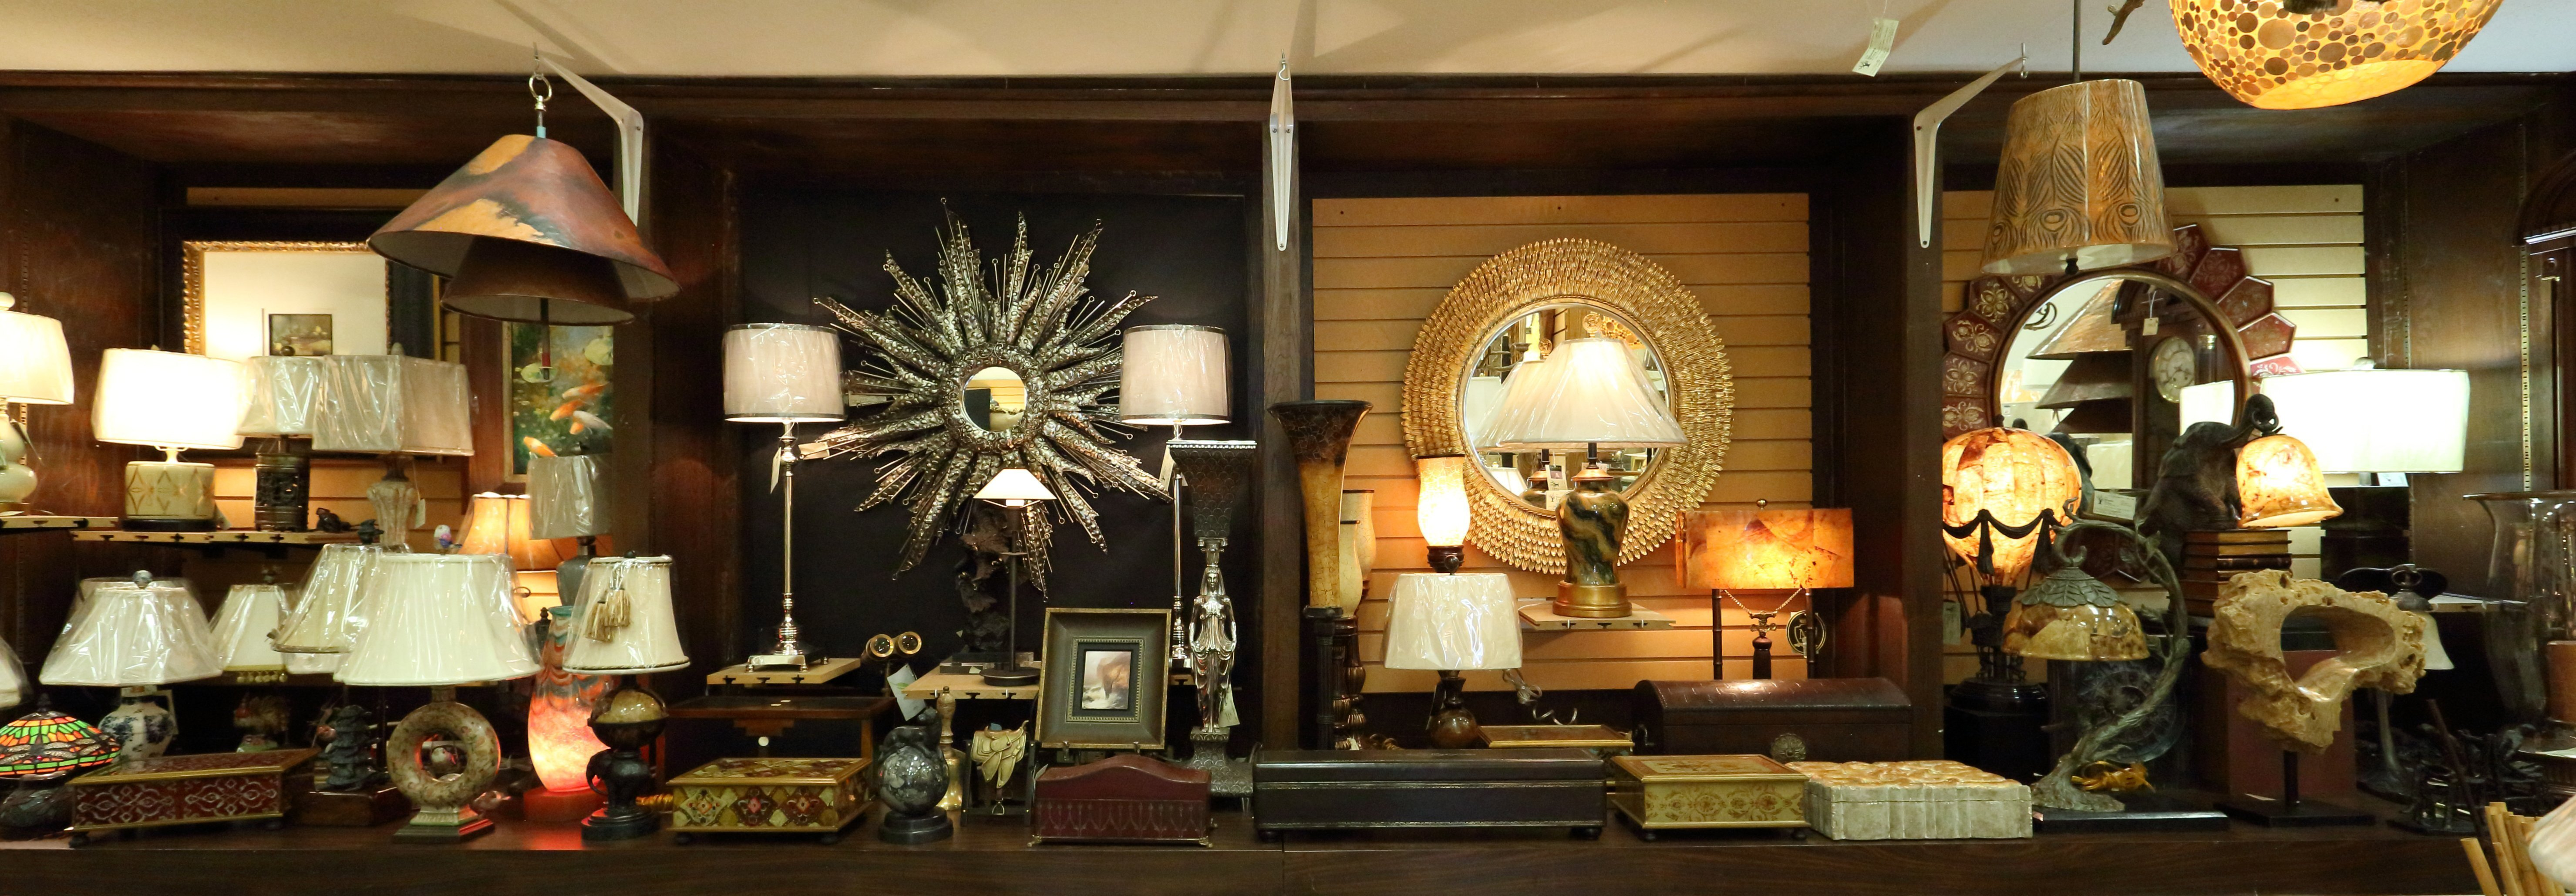 SHOP WATCH - PELUCHE DECOR, A MUST STOP SHOP IN HOUSTON - Interior ...